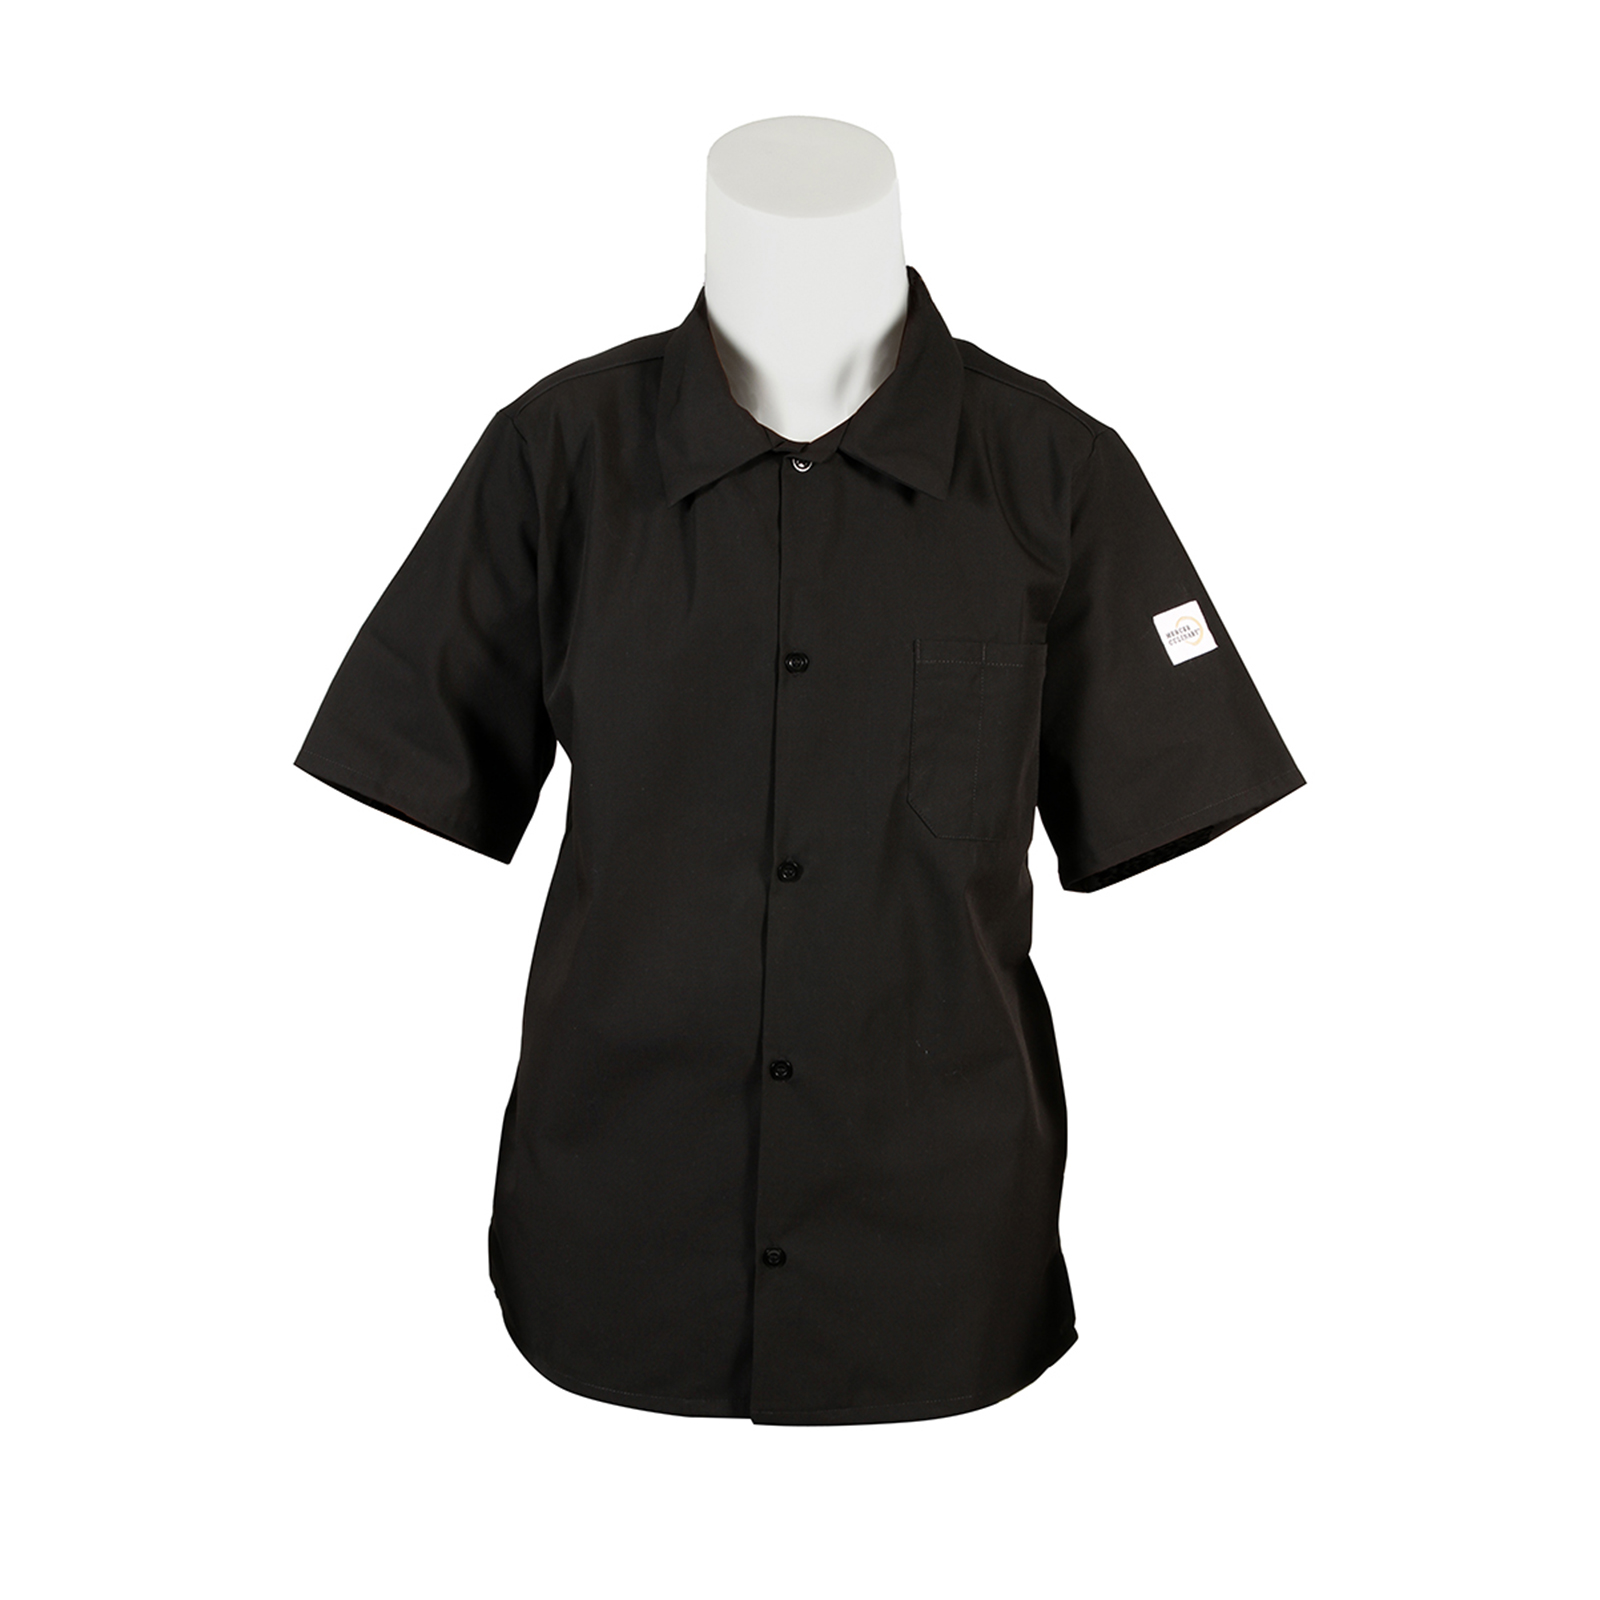 Mercer Culinary M60200BK1X cook's shirt